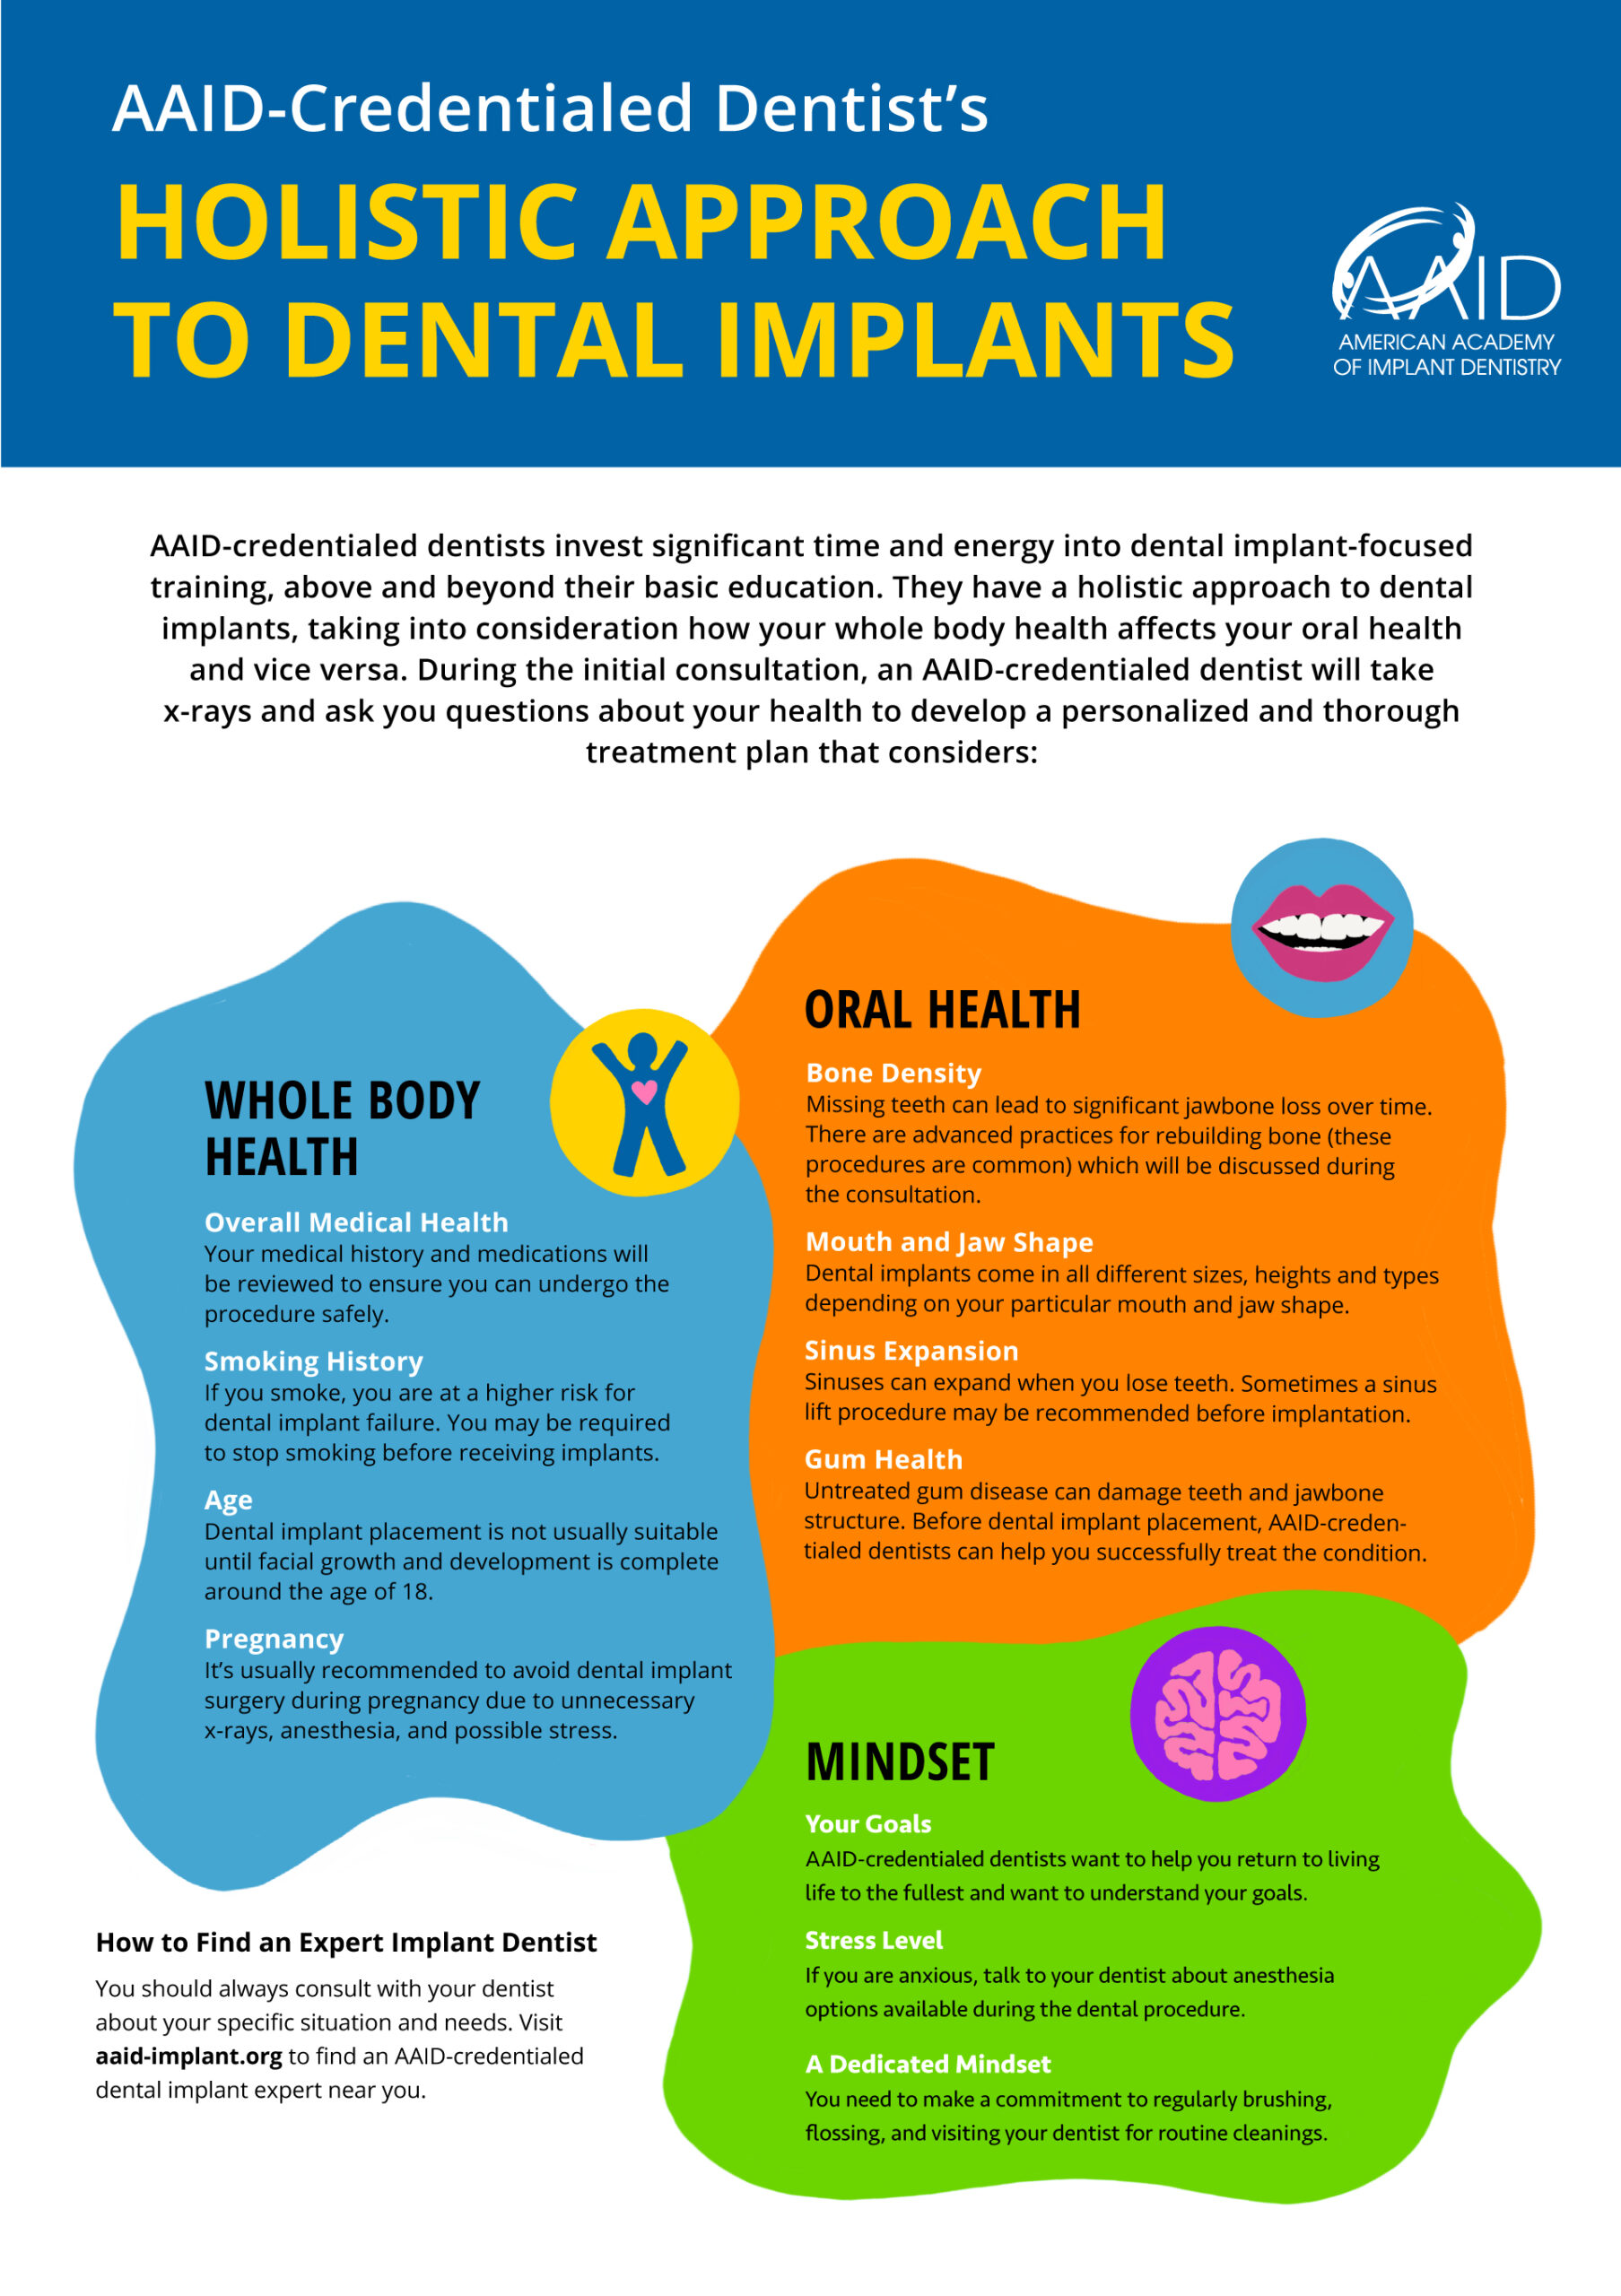 Holistic approach to dental implants